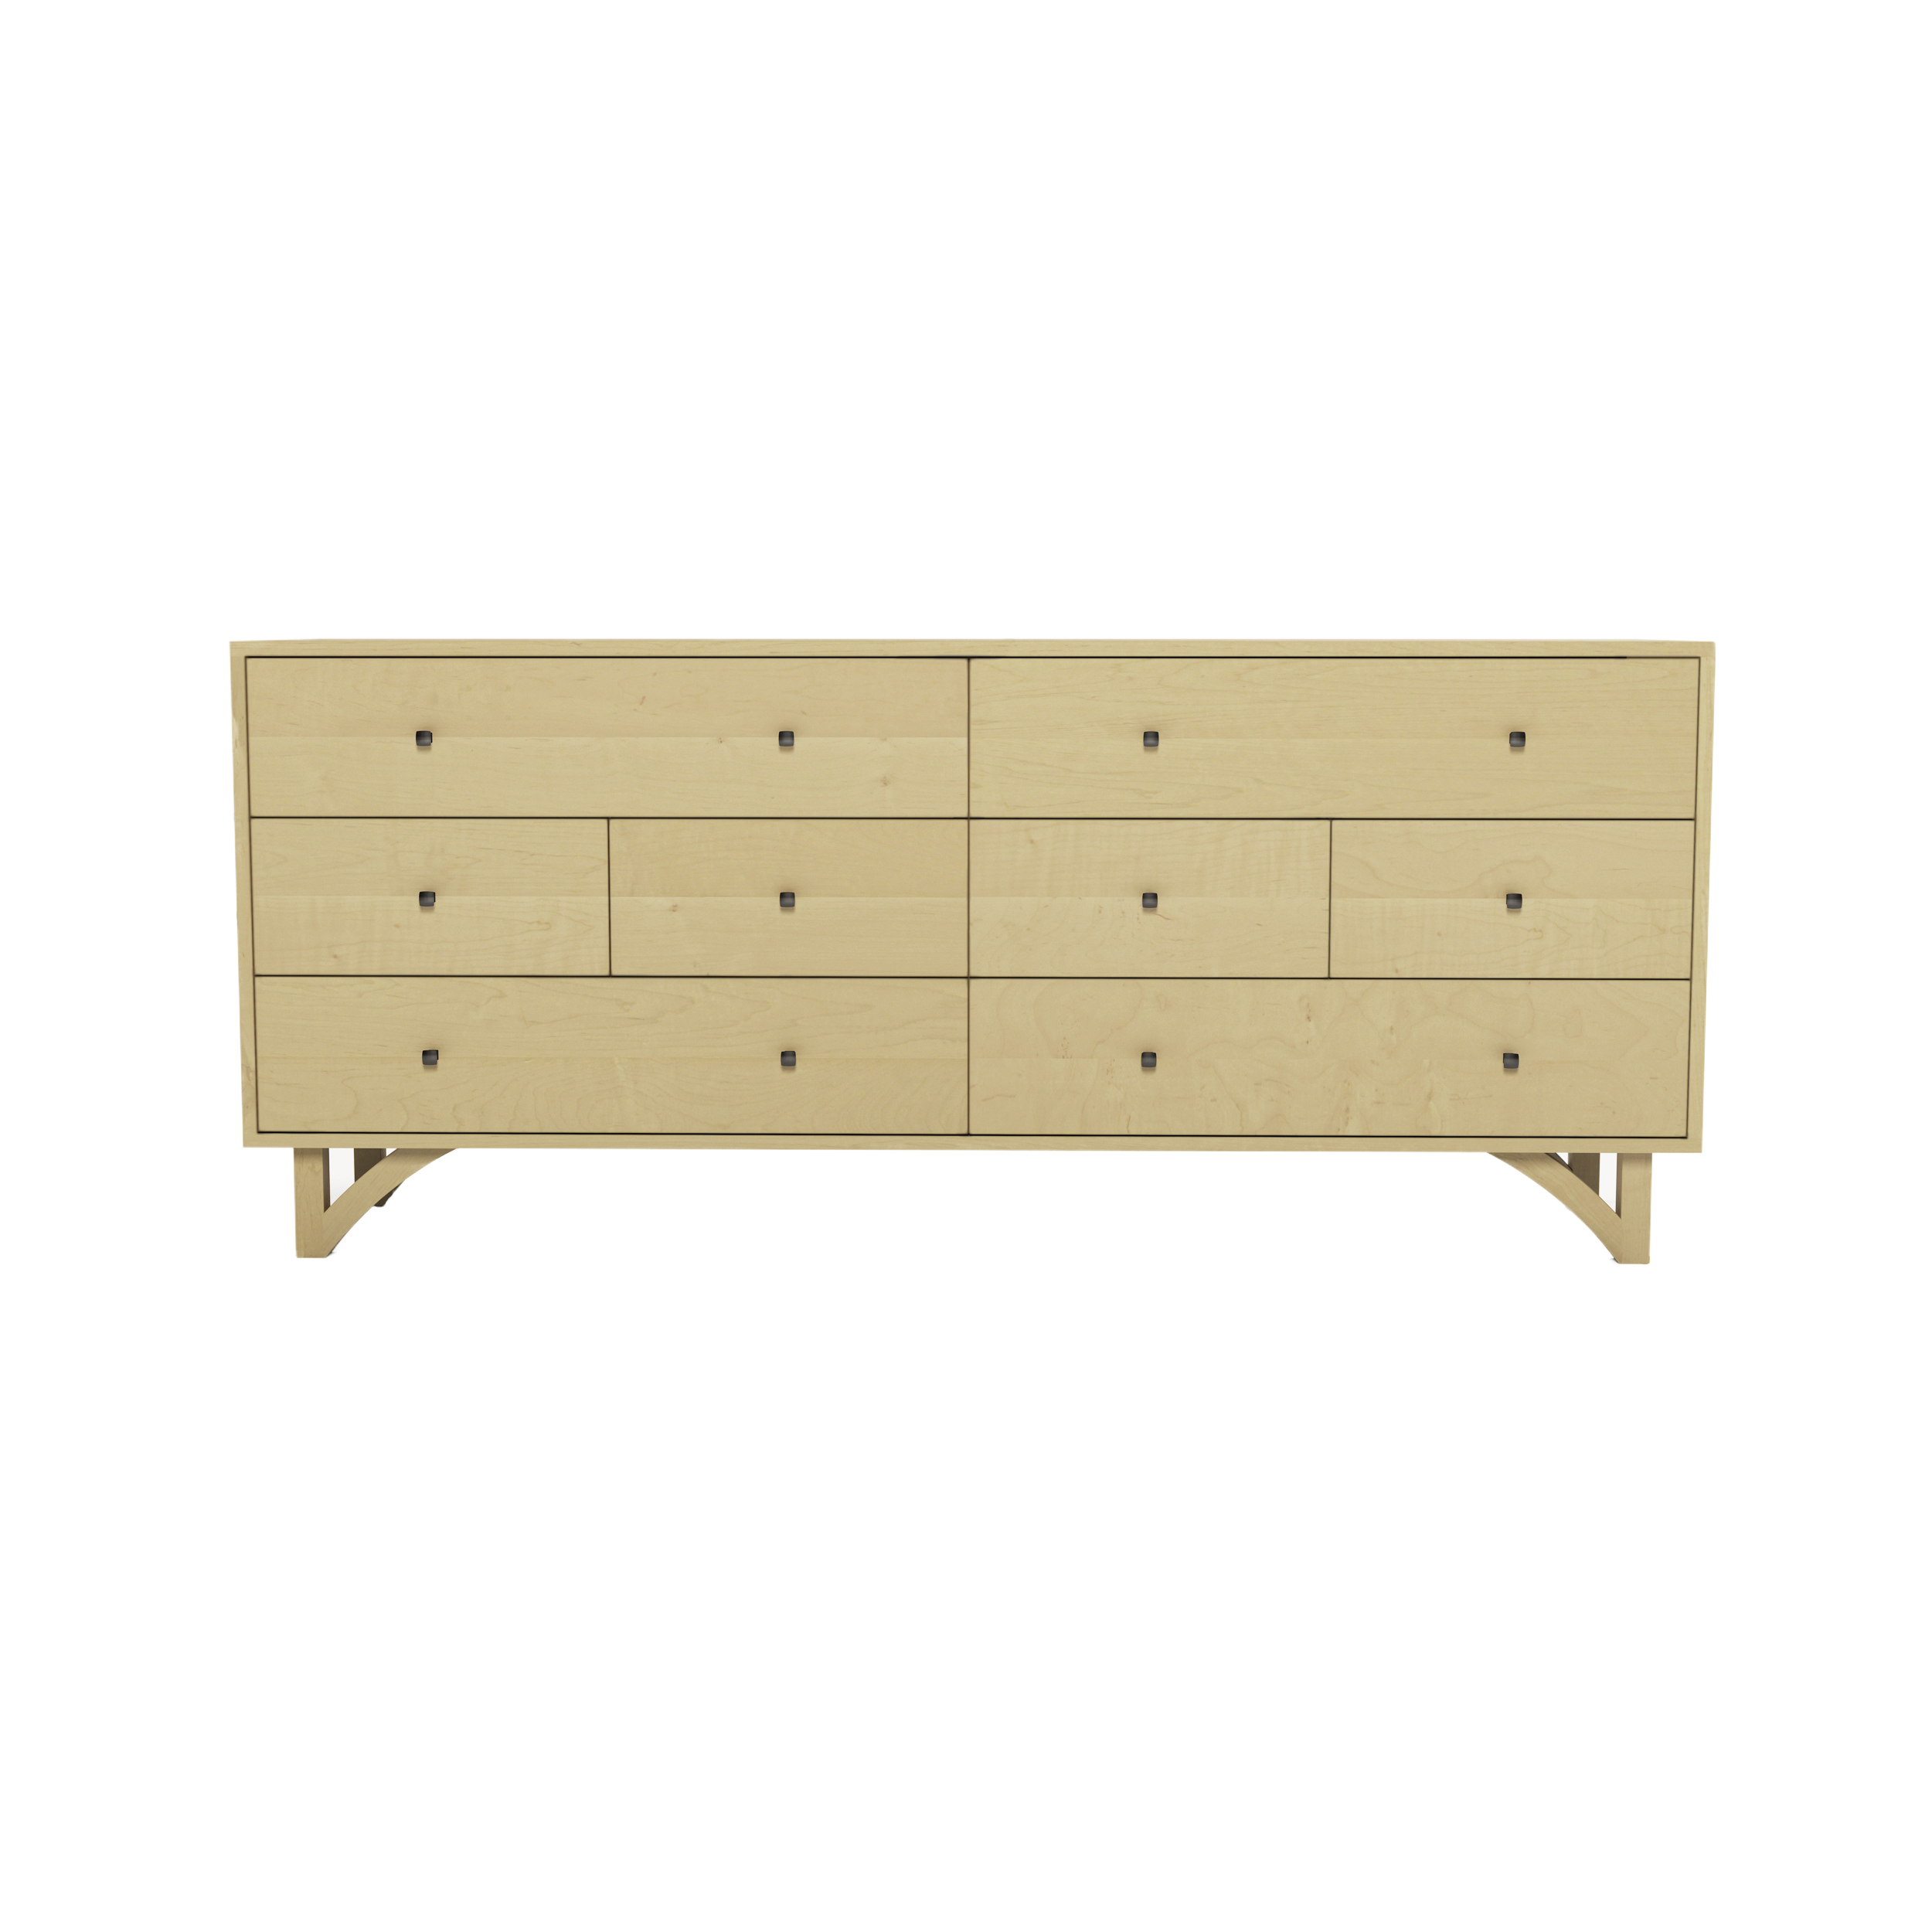 Series 454 Dresser With Eight Drawers At 72″ In Width